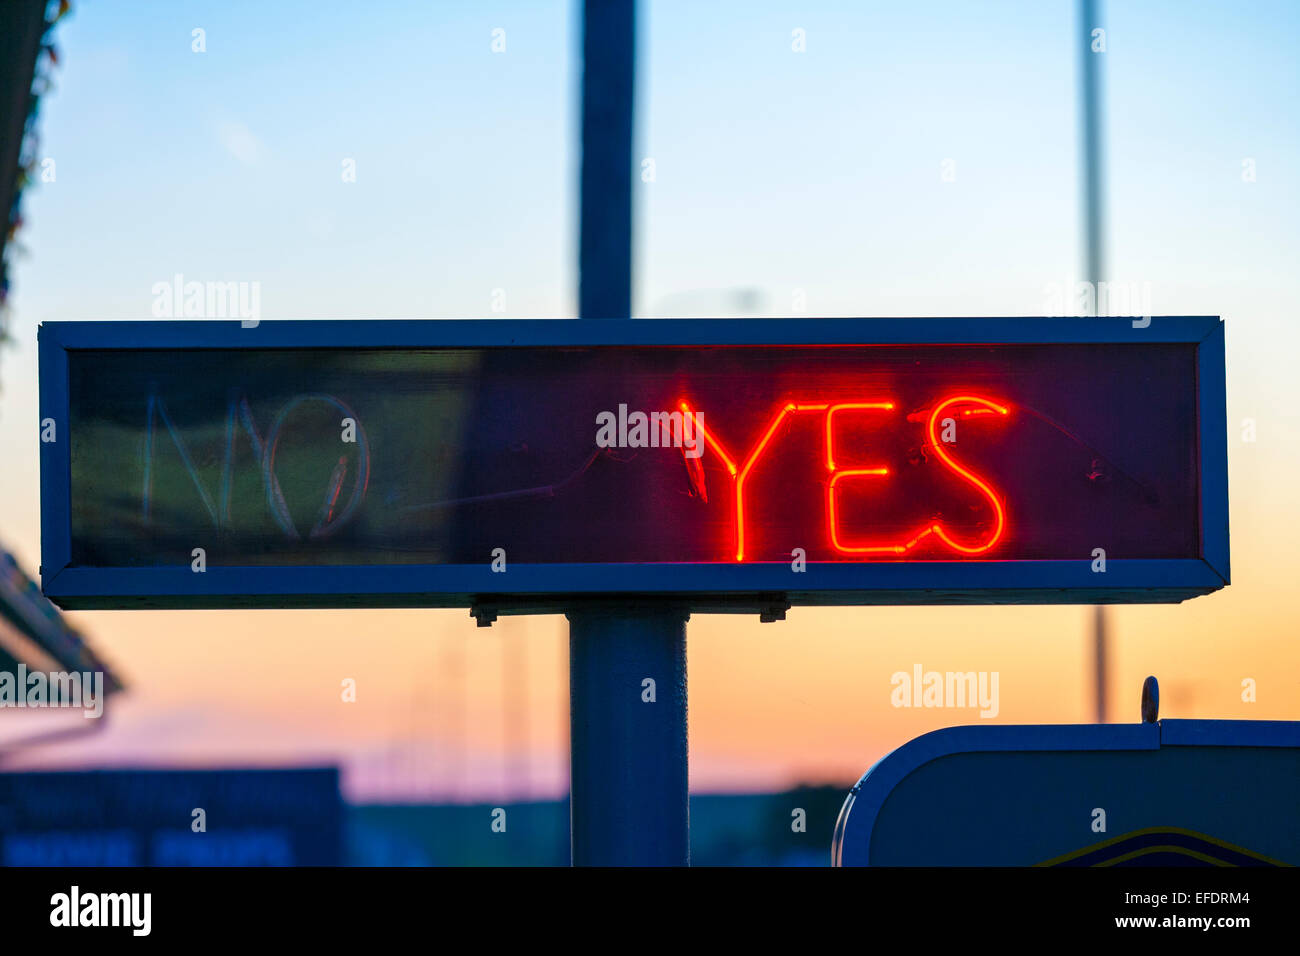 Neon sign Yes or No Vacancy at a US motel with Yes light switched on. Stock Photo